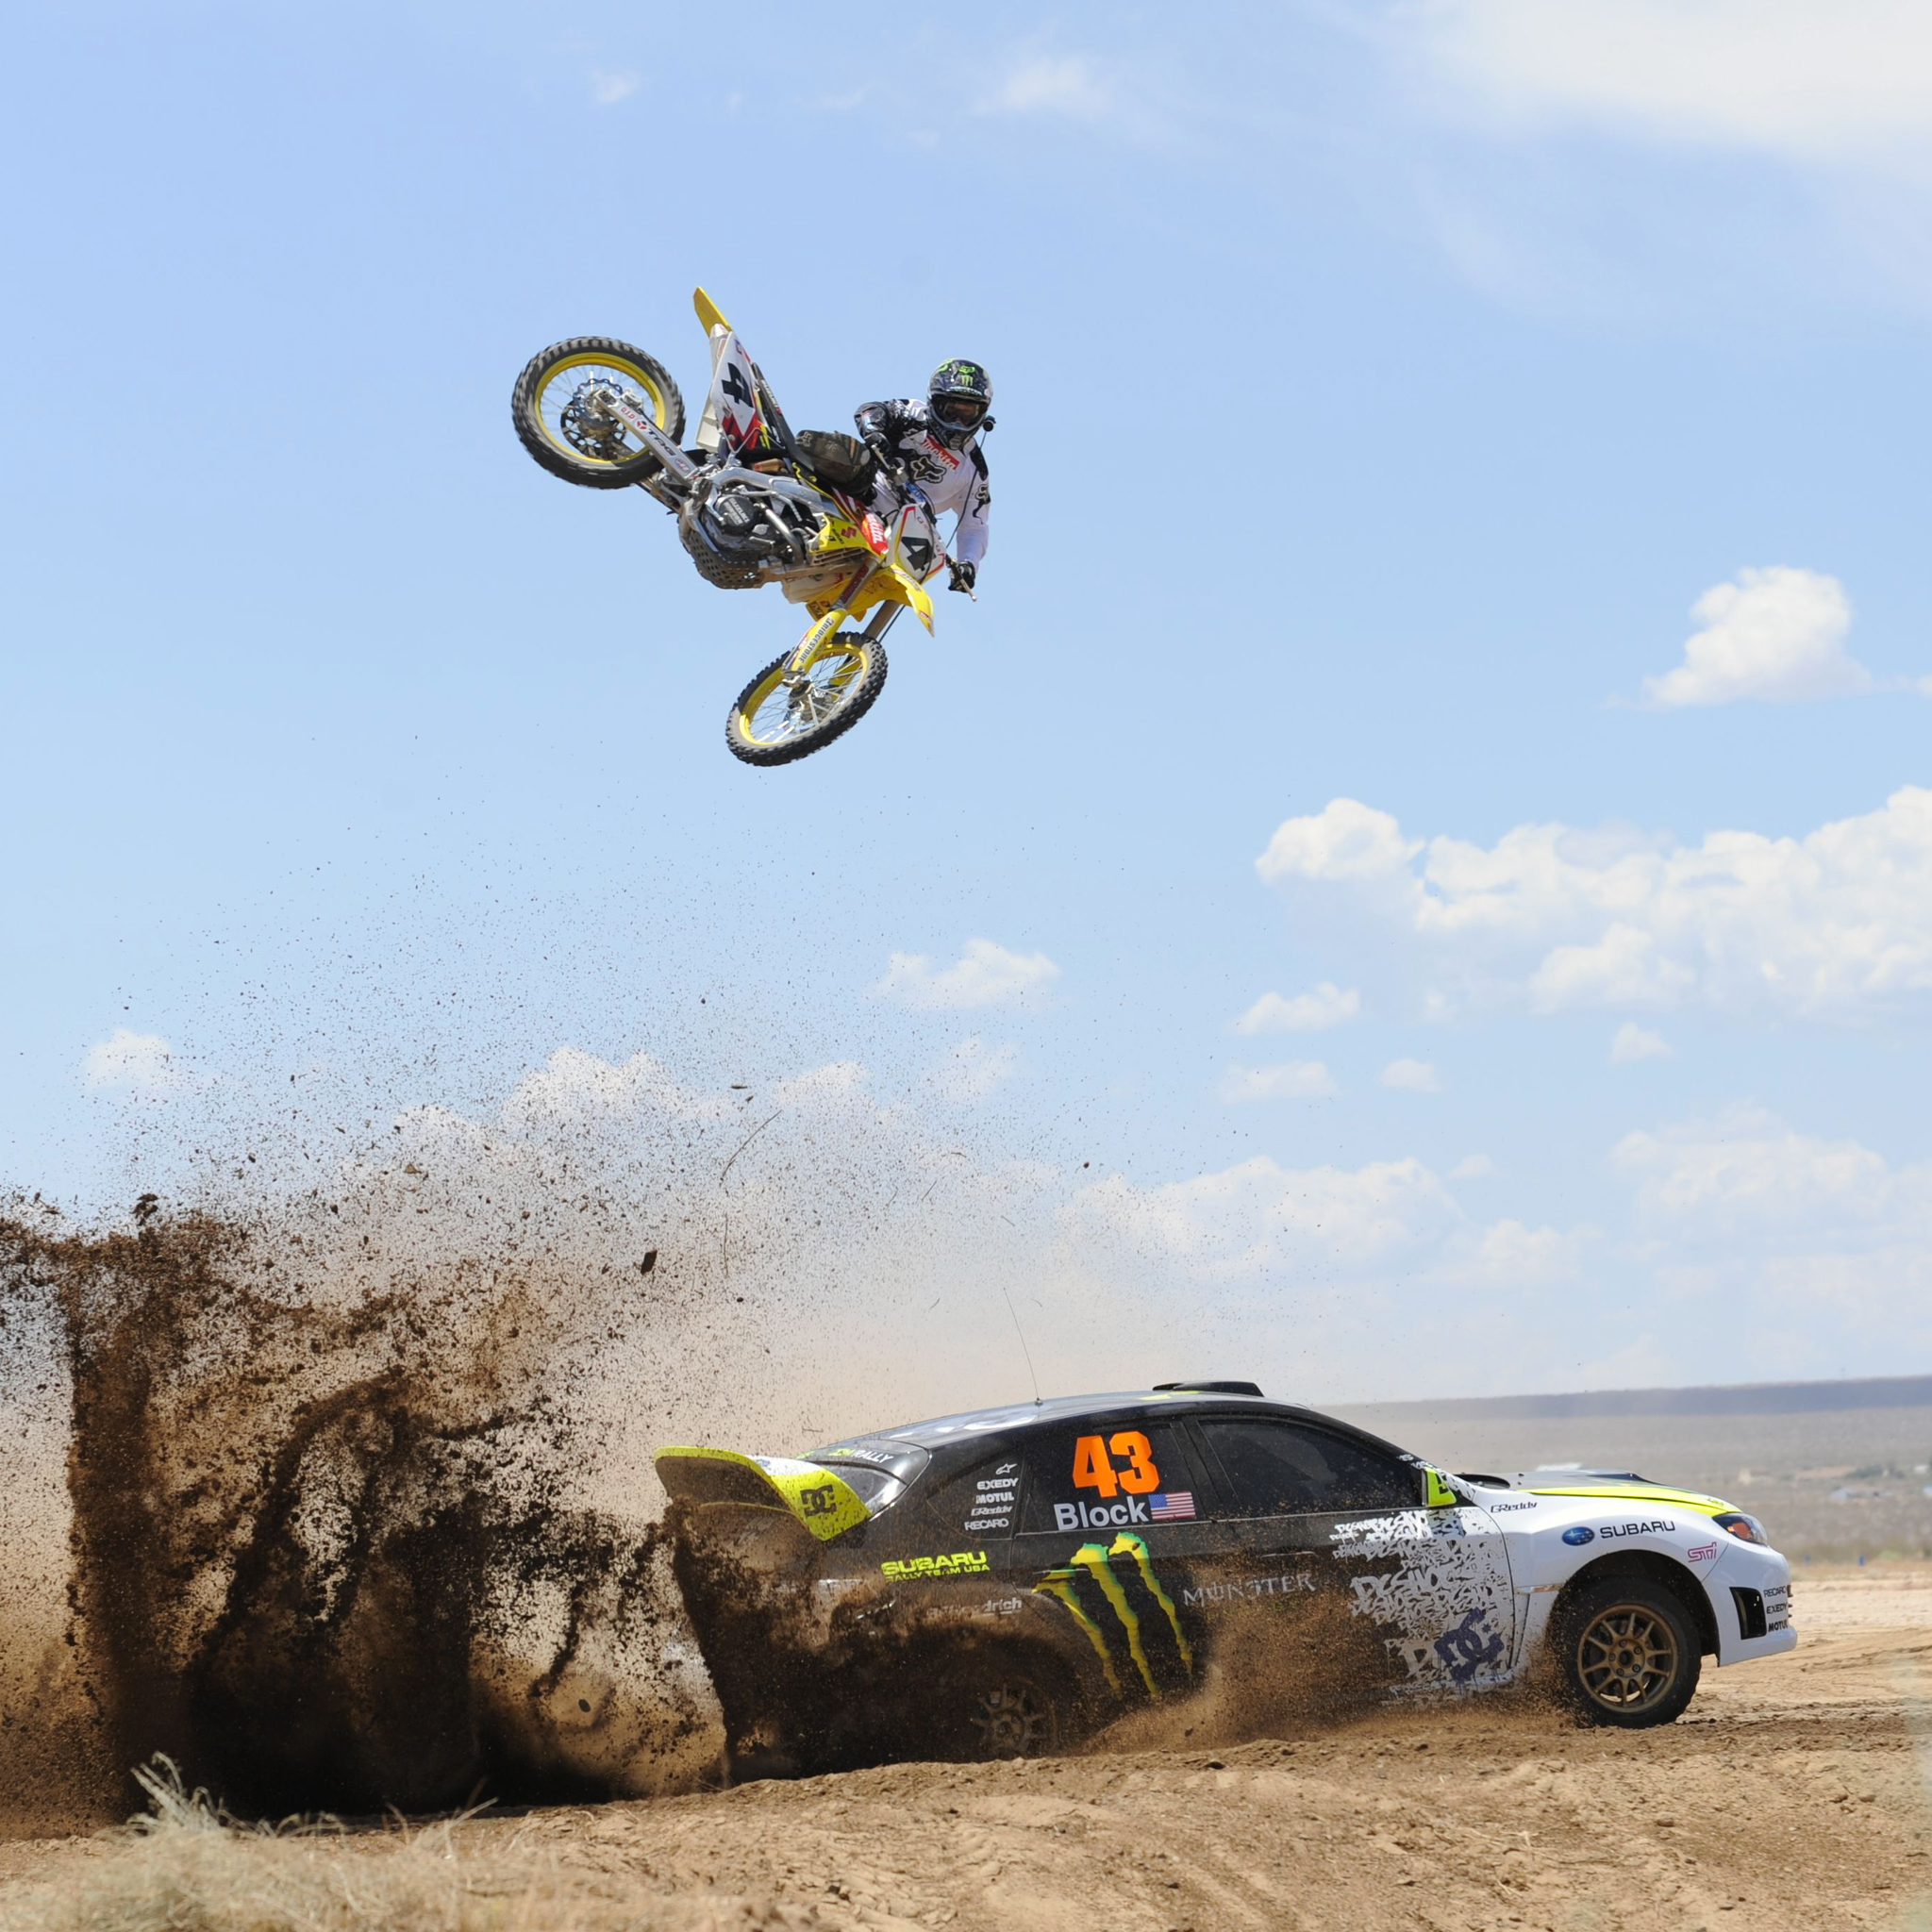 Rally Cross to Ford 3Wallpapers iPad Retina Rally Cross to Ford   iPad Retina